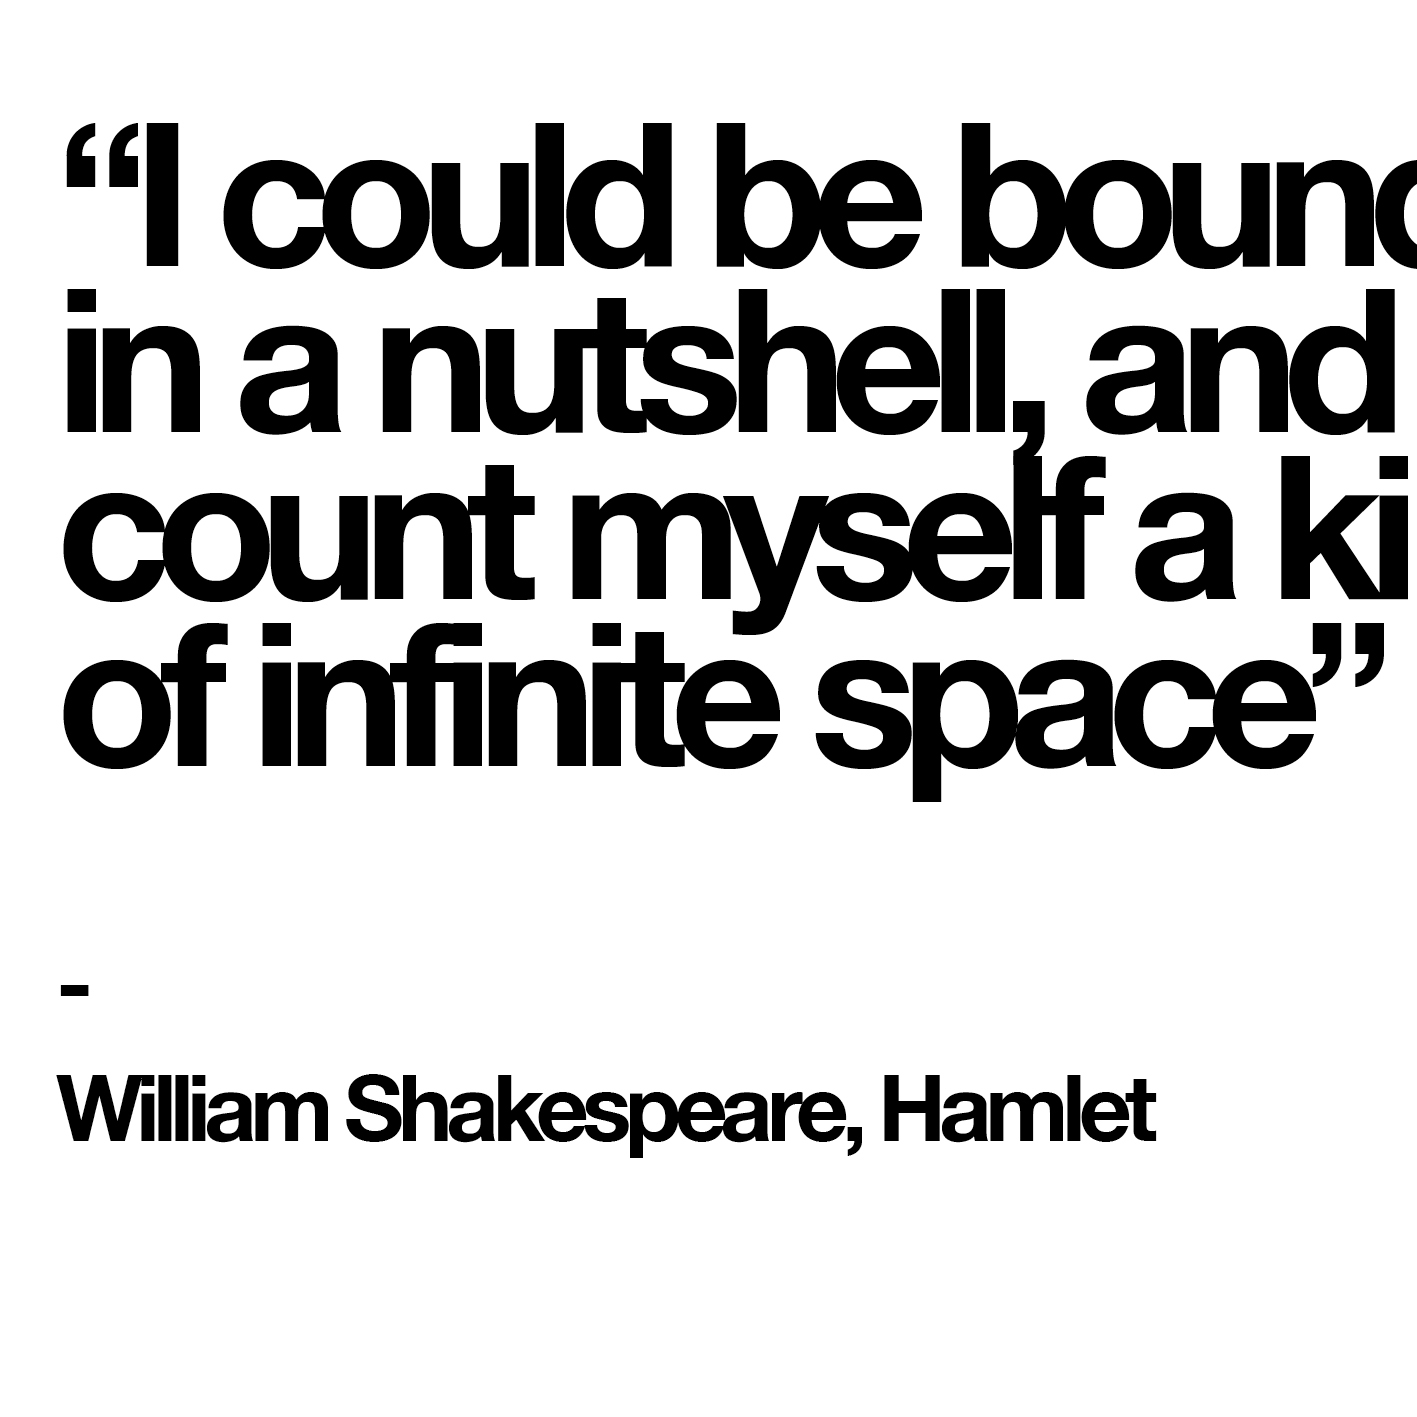 """I could be bounded in a nutshell, and count myself a king of infinite space"" - William Shakespeare, Hamlet"